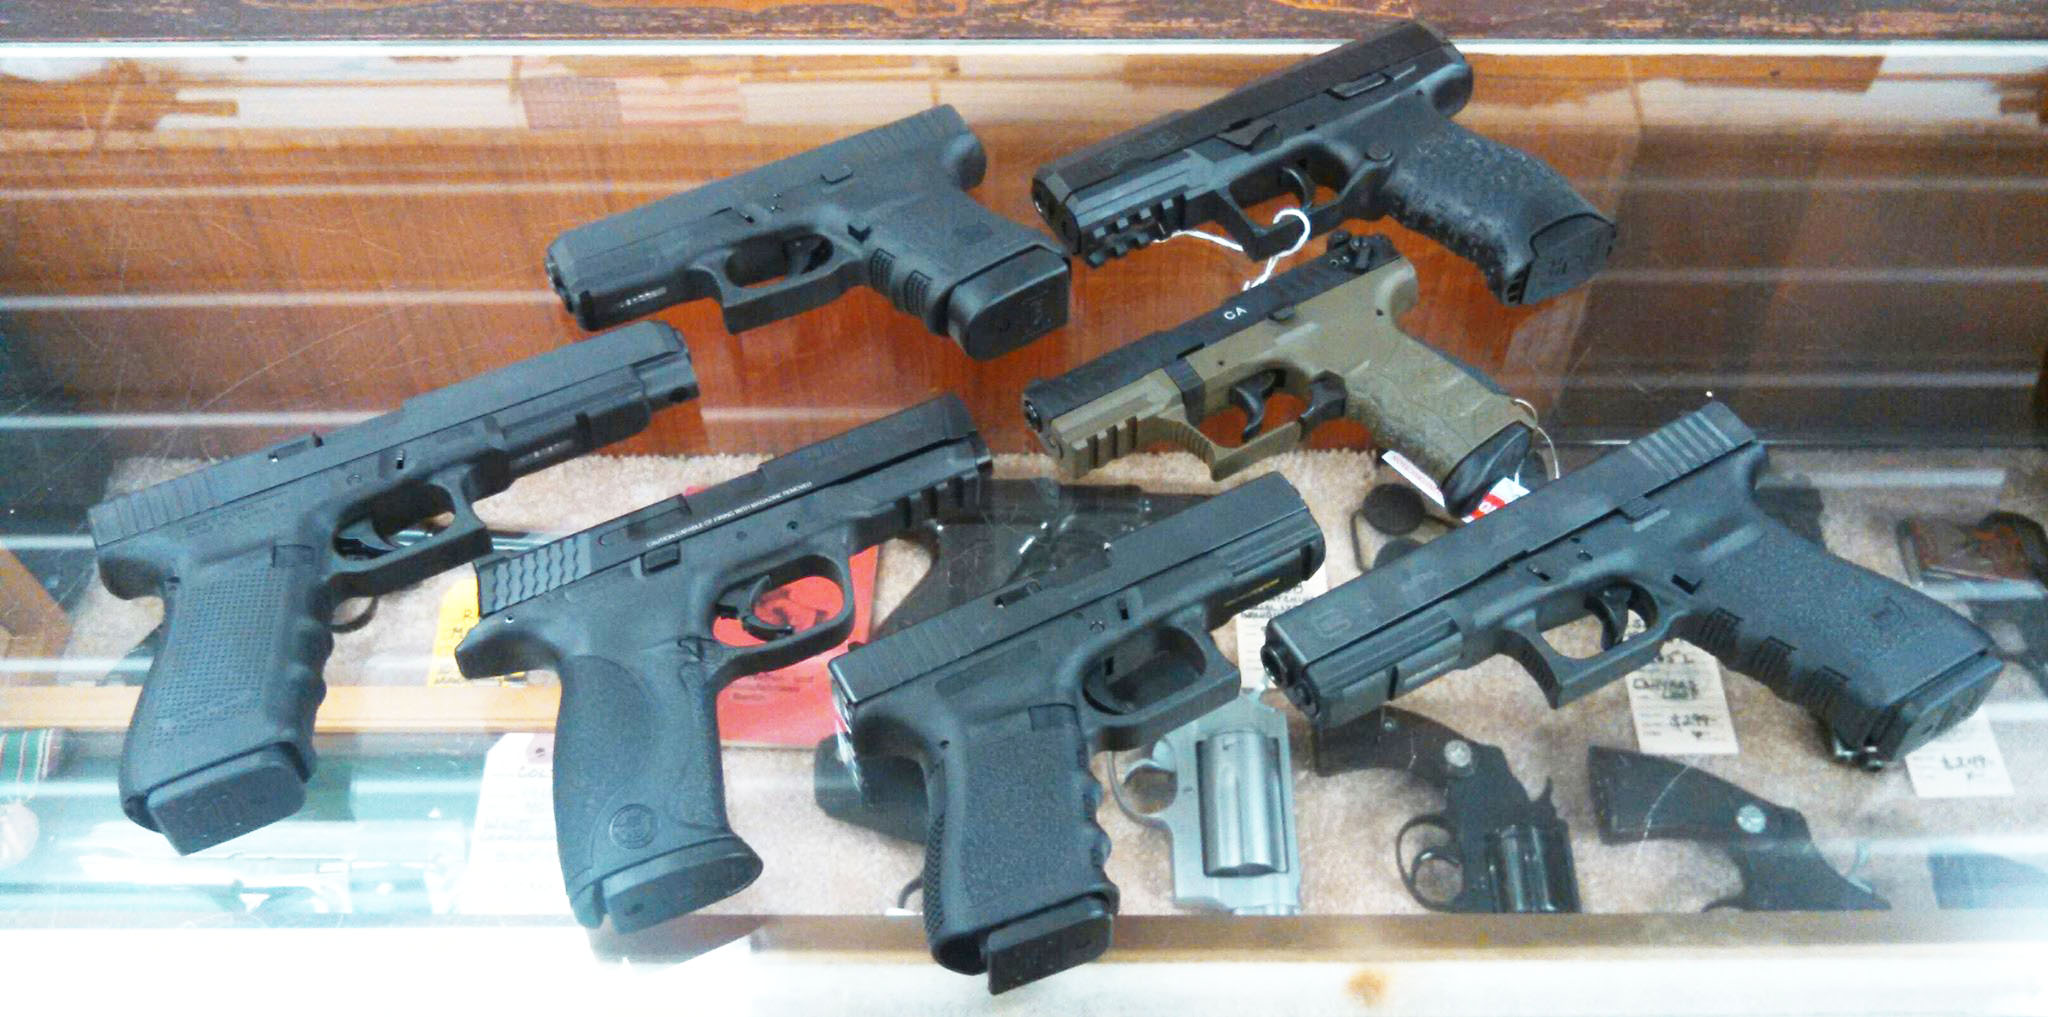 IN STOCK- NEW HANDGUNS- GLOCK 30S .45, GLOCK 41gen4 .45, WALTHER PPX 9mm, SMITH & WESSON M&P9 9mm, WALTHER P22 .22lr, GLOCK 23 .40 & GLOCK 21 .45. Stop by and take a look!